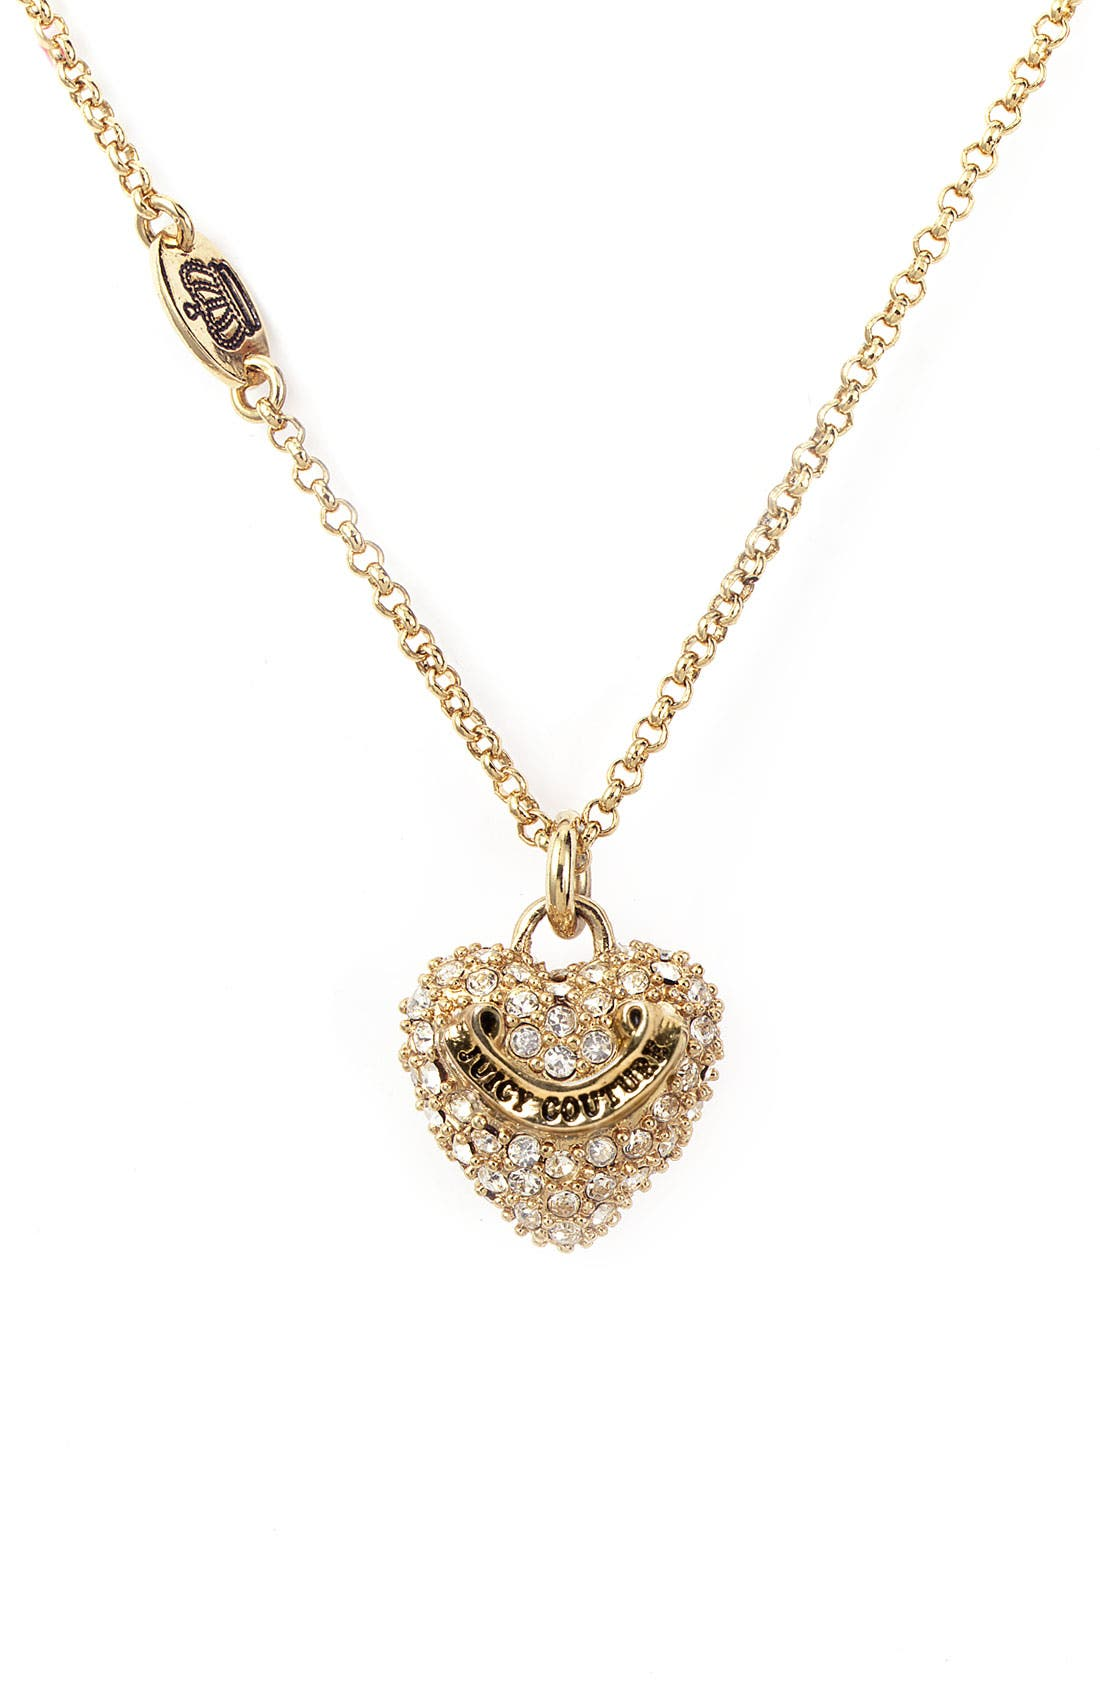 Alternate Image 1 Selected - Juicy Couture 'Wish - Heart' Necklace